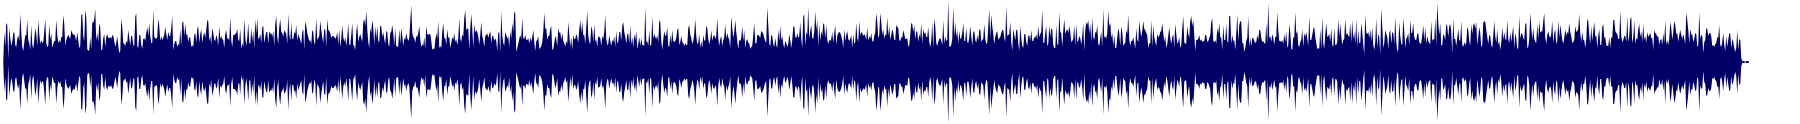 waveform of track #83340